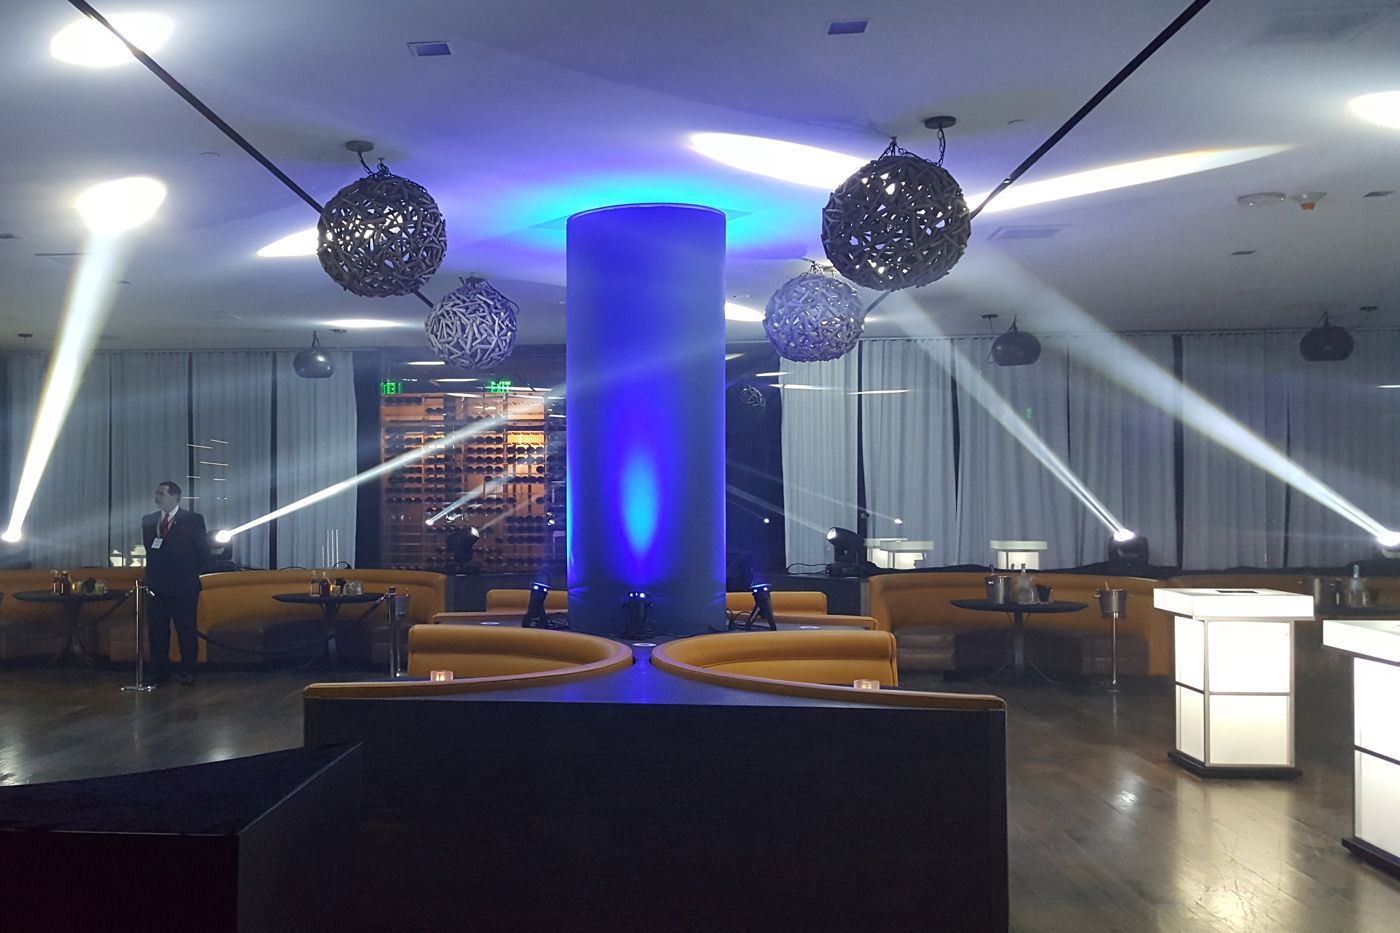 A lounge area at an event in the Sofitel Hotel with moving lights around the space